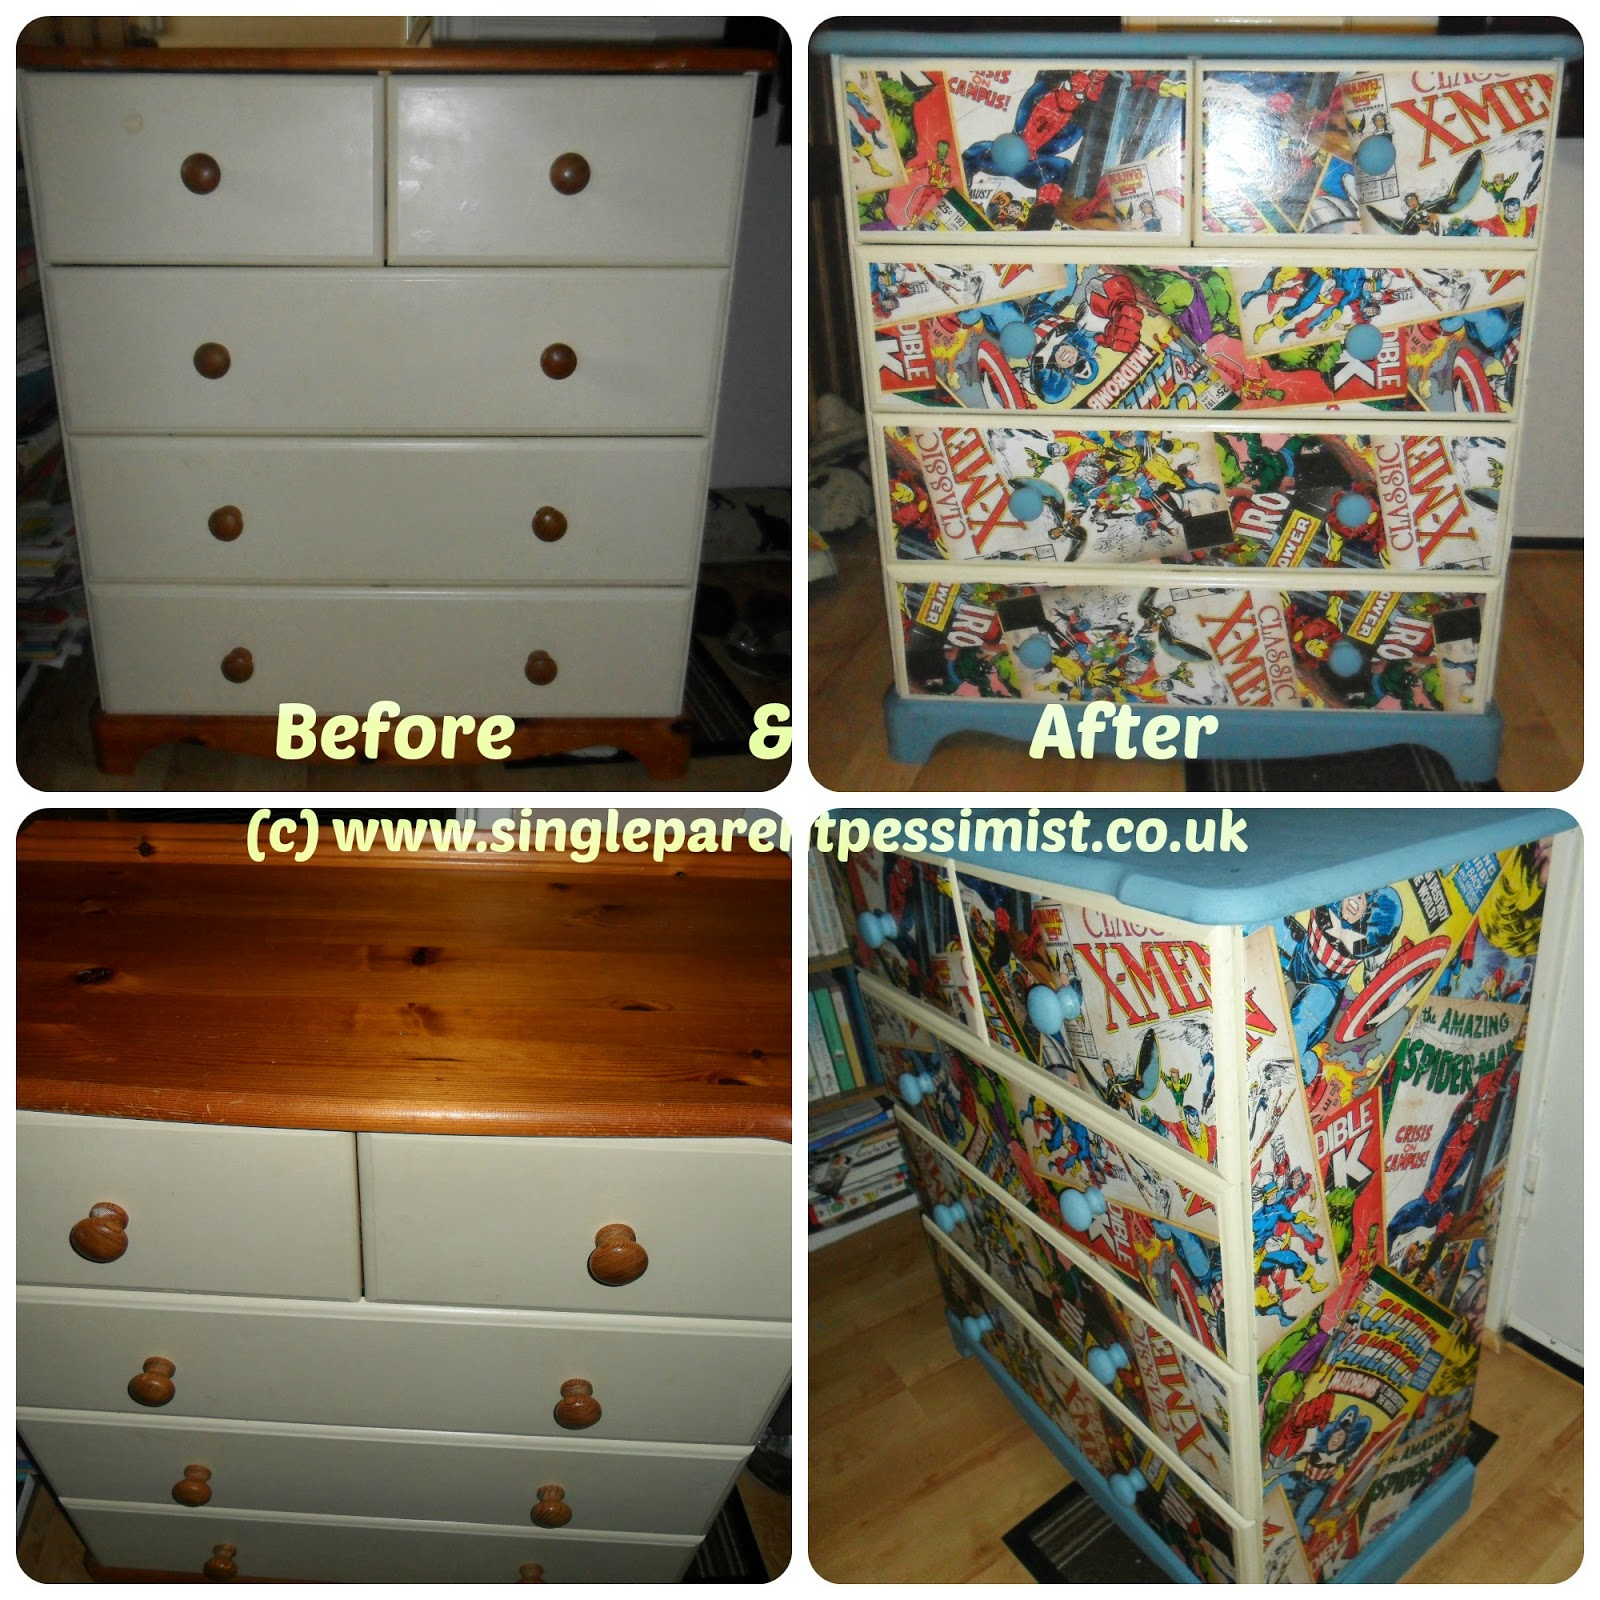 Marvel Comic Bedroom Dc Superhero Dresser For Our Sons Super Hero Themed Nursery